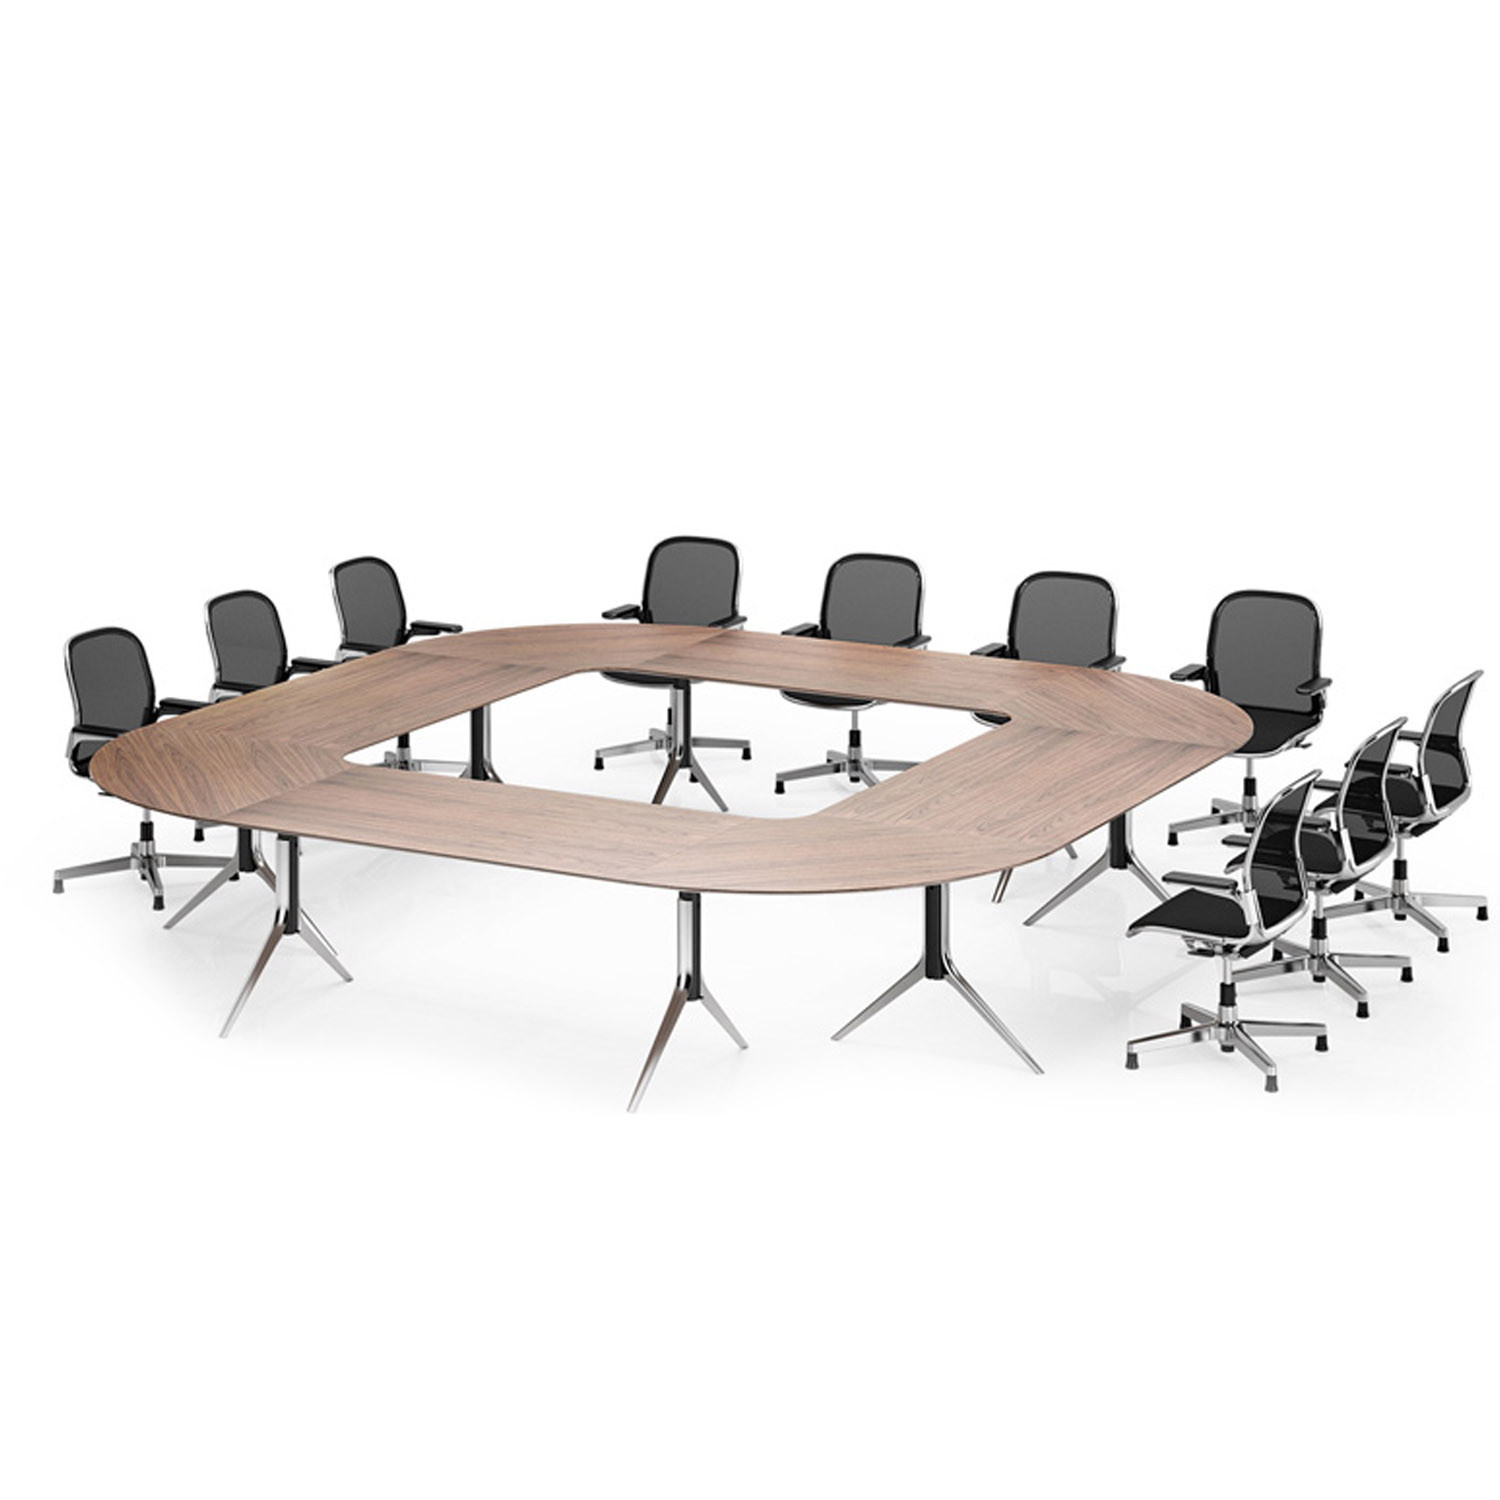 NoTable Meeting Table